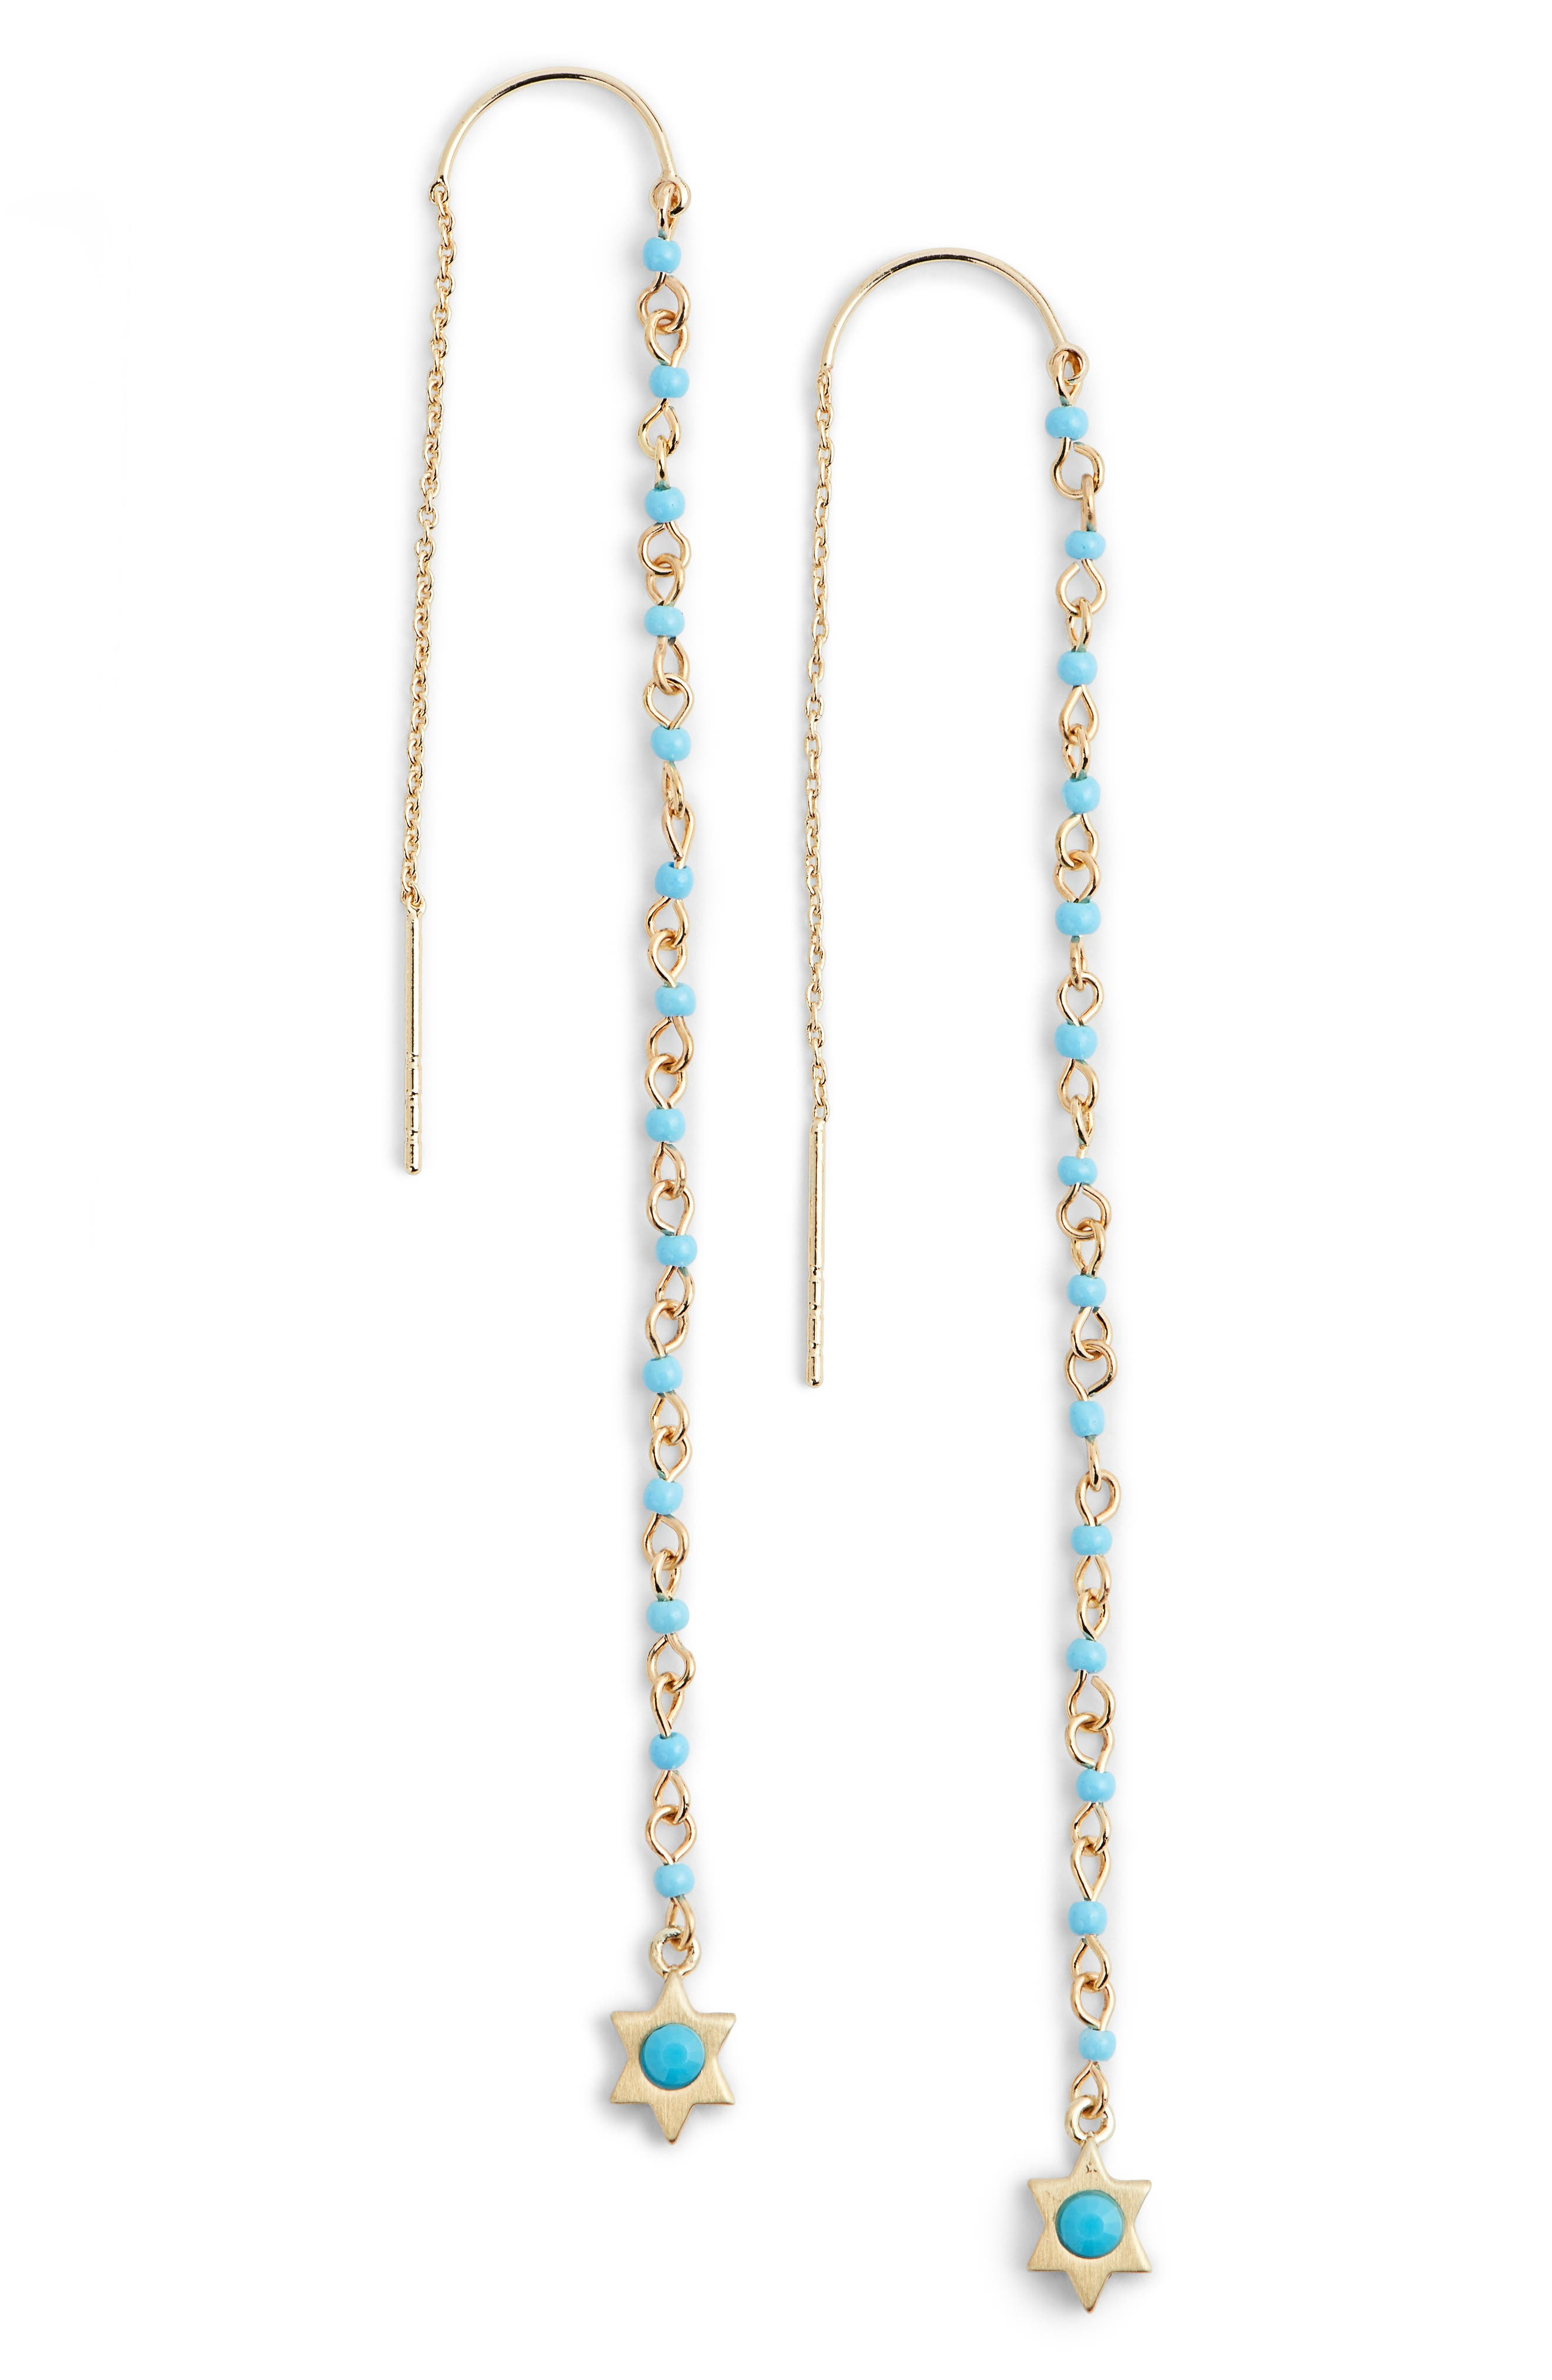 Linear Beaded Threader Earrings,                         Main,                         color, Turquoise/ Gold